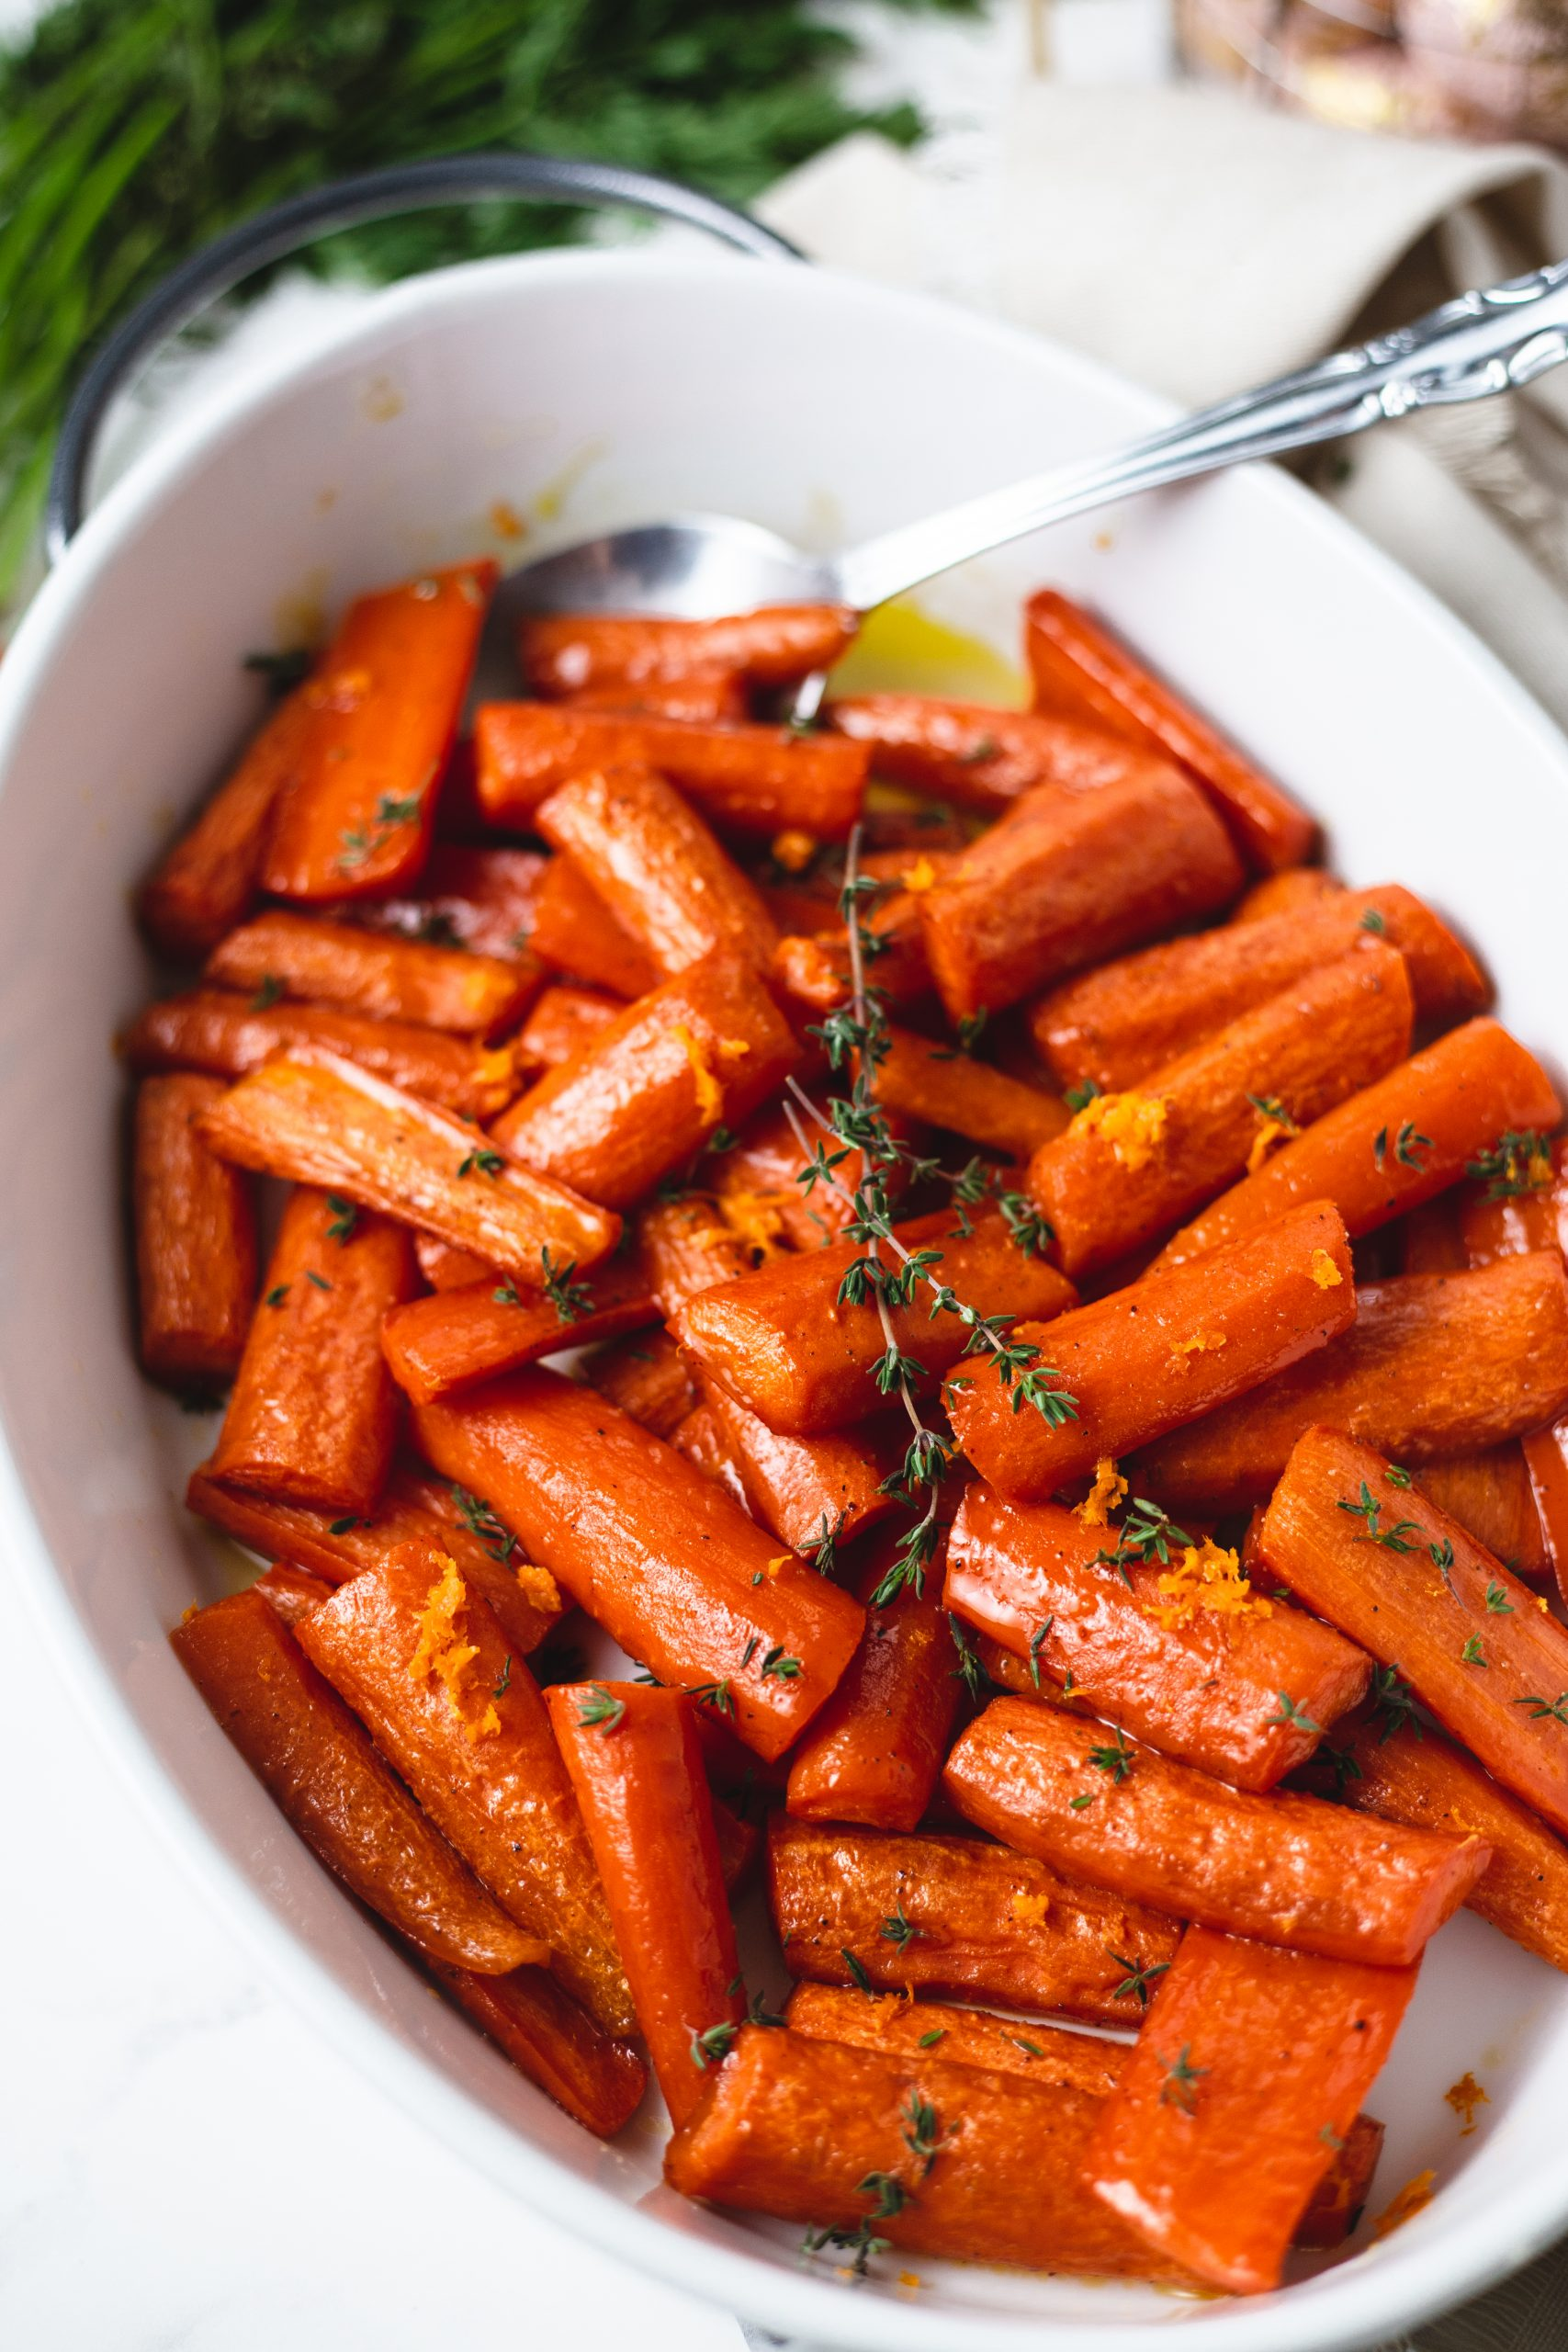 roasted carrots with honey in a white dish with a spoon.